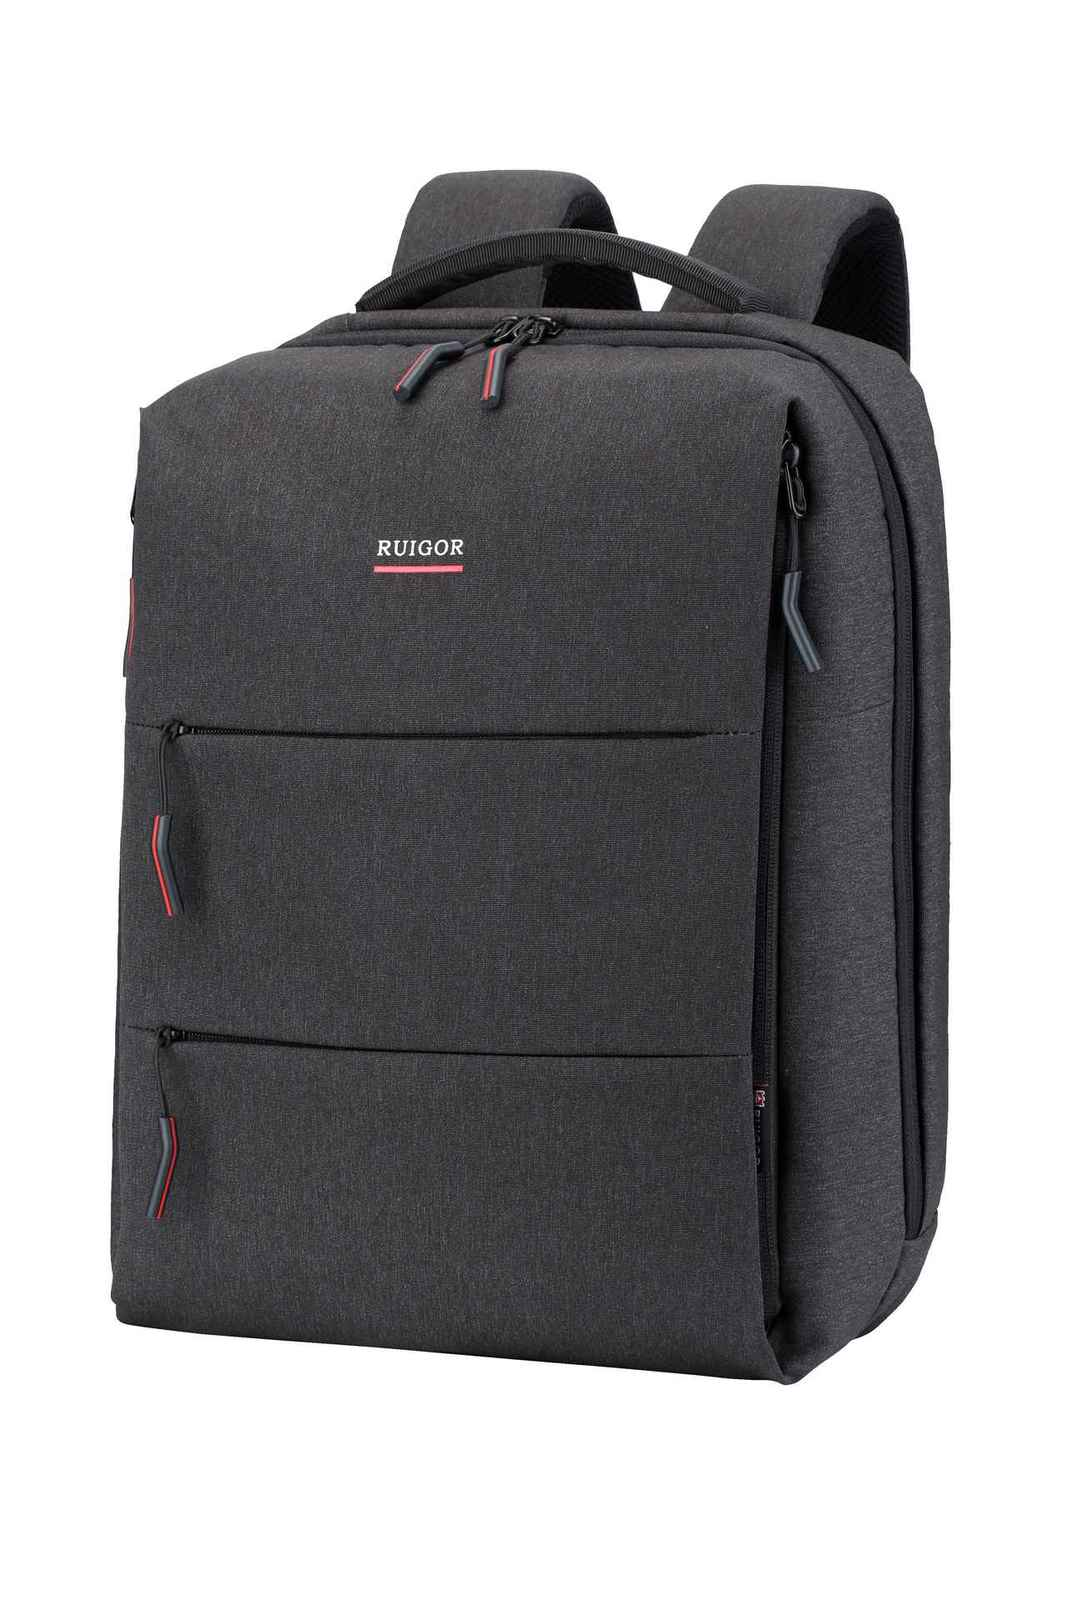 Primary image for RUIGOR CITY 37 Laptop Backpack Dark Grey